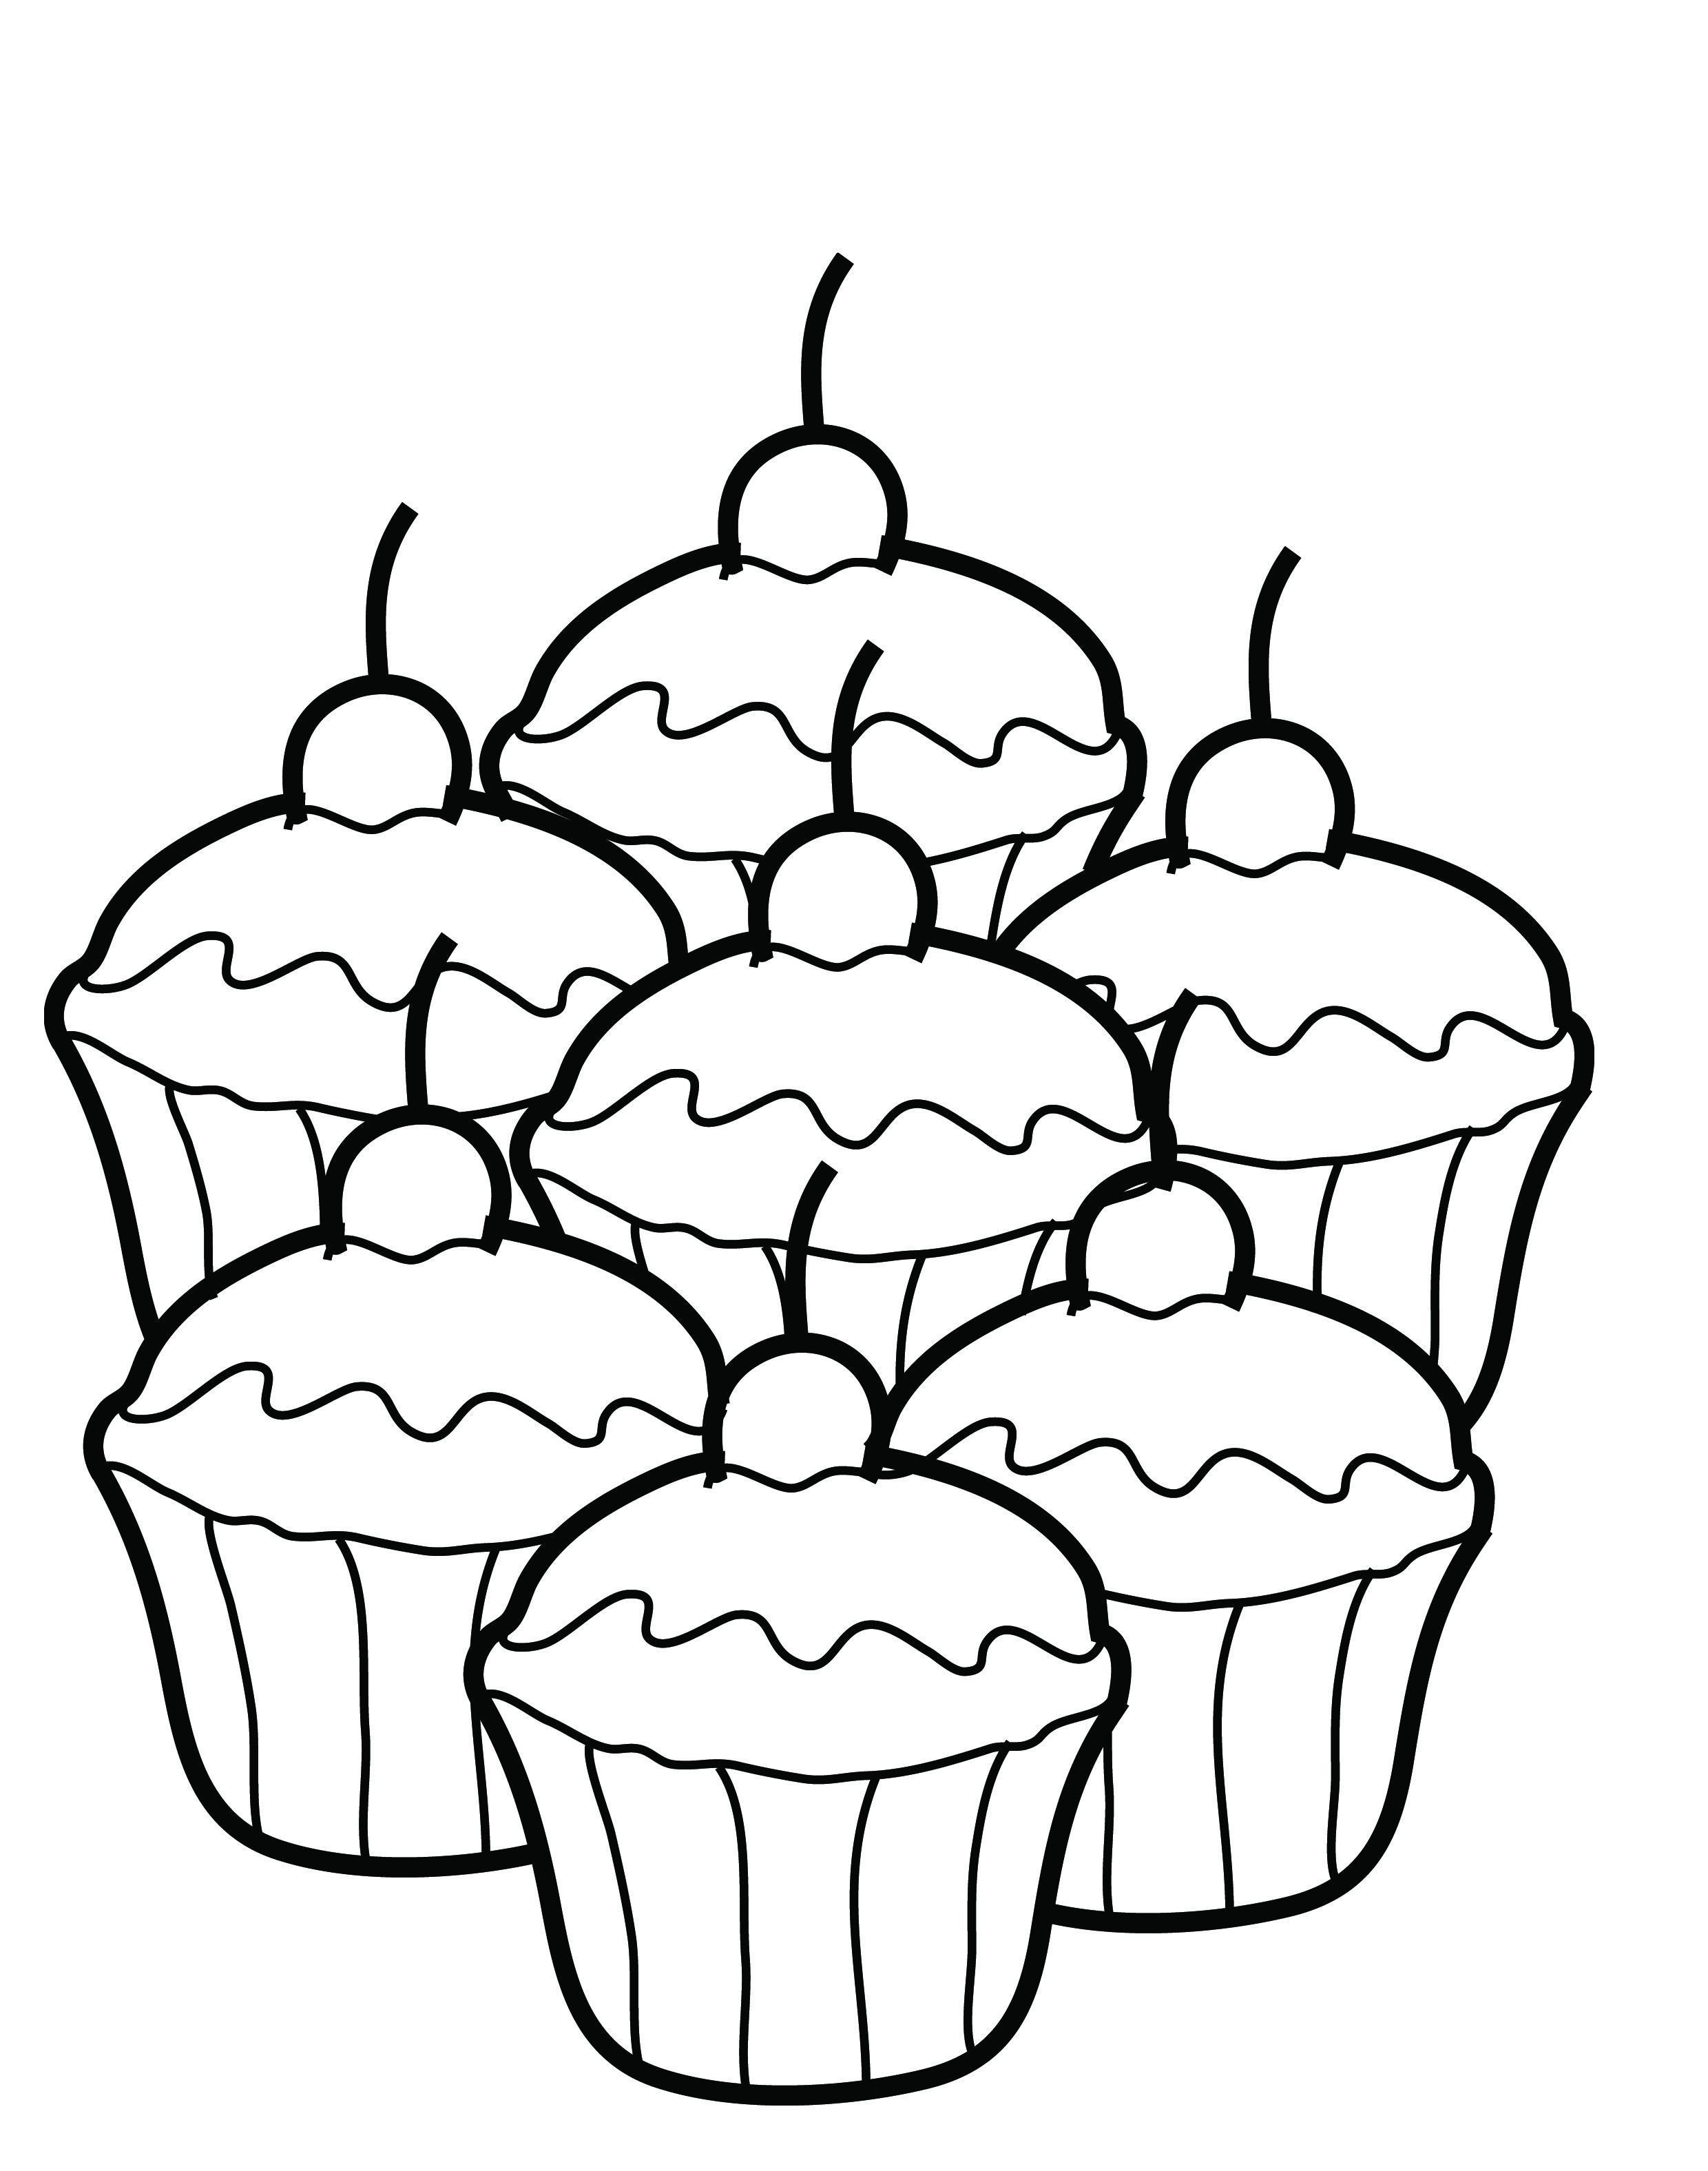 cupcake coloring pages for kids - Kids Colouring Pages Free